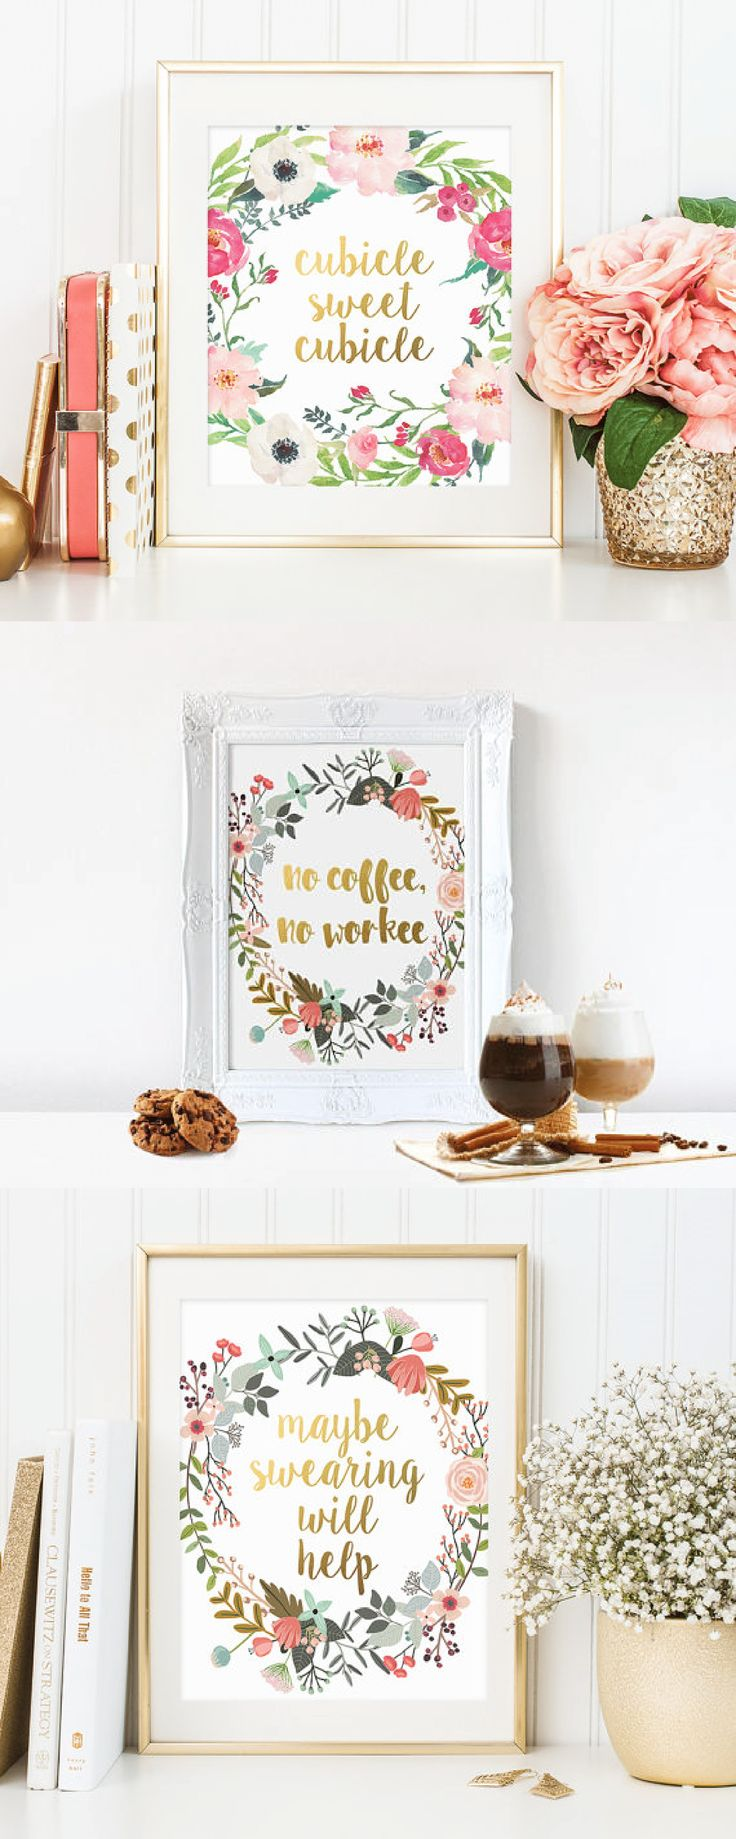 Design Cubicle Wall Decor best 25 office cubicle decorations ideas on pinterest print no coffee workee gold floral art quote decor watercolor work motivation gifts